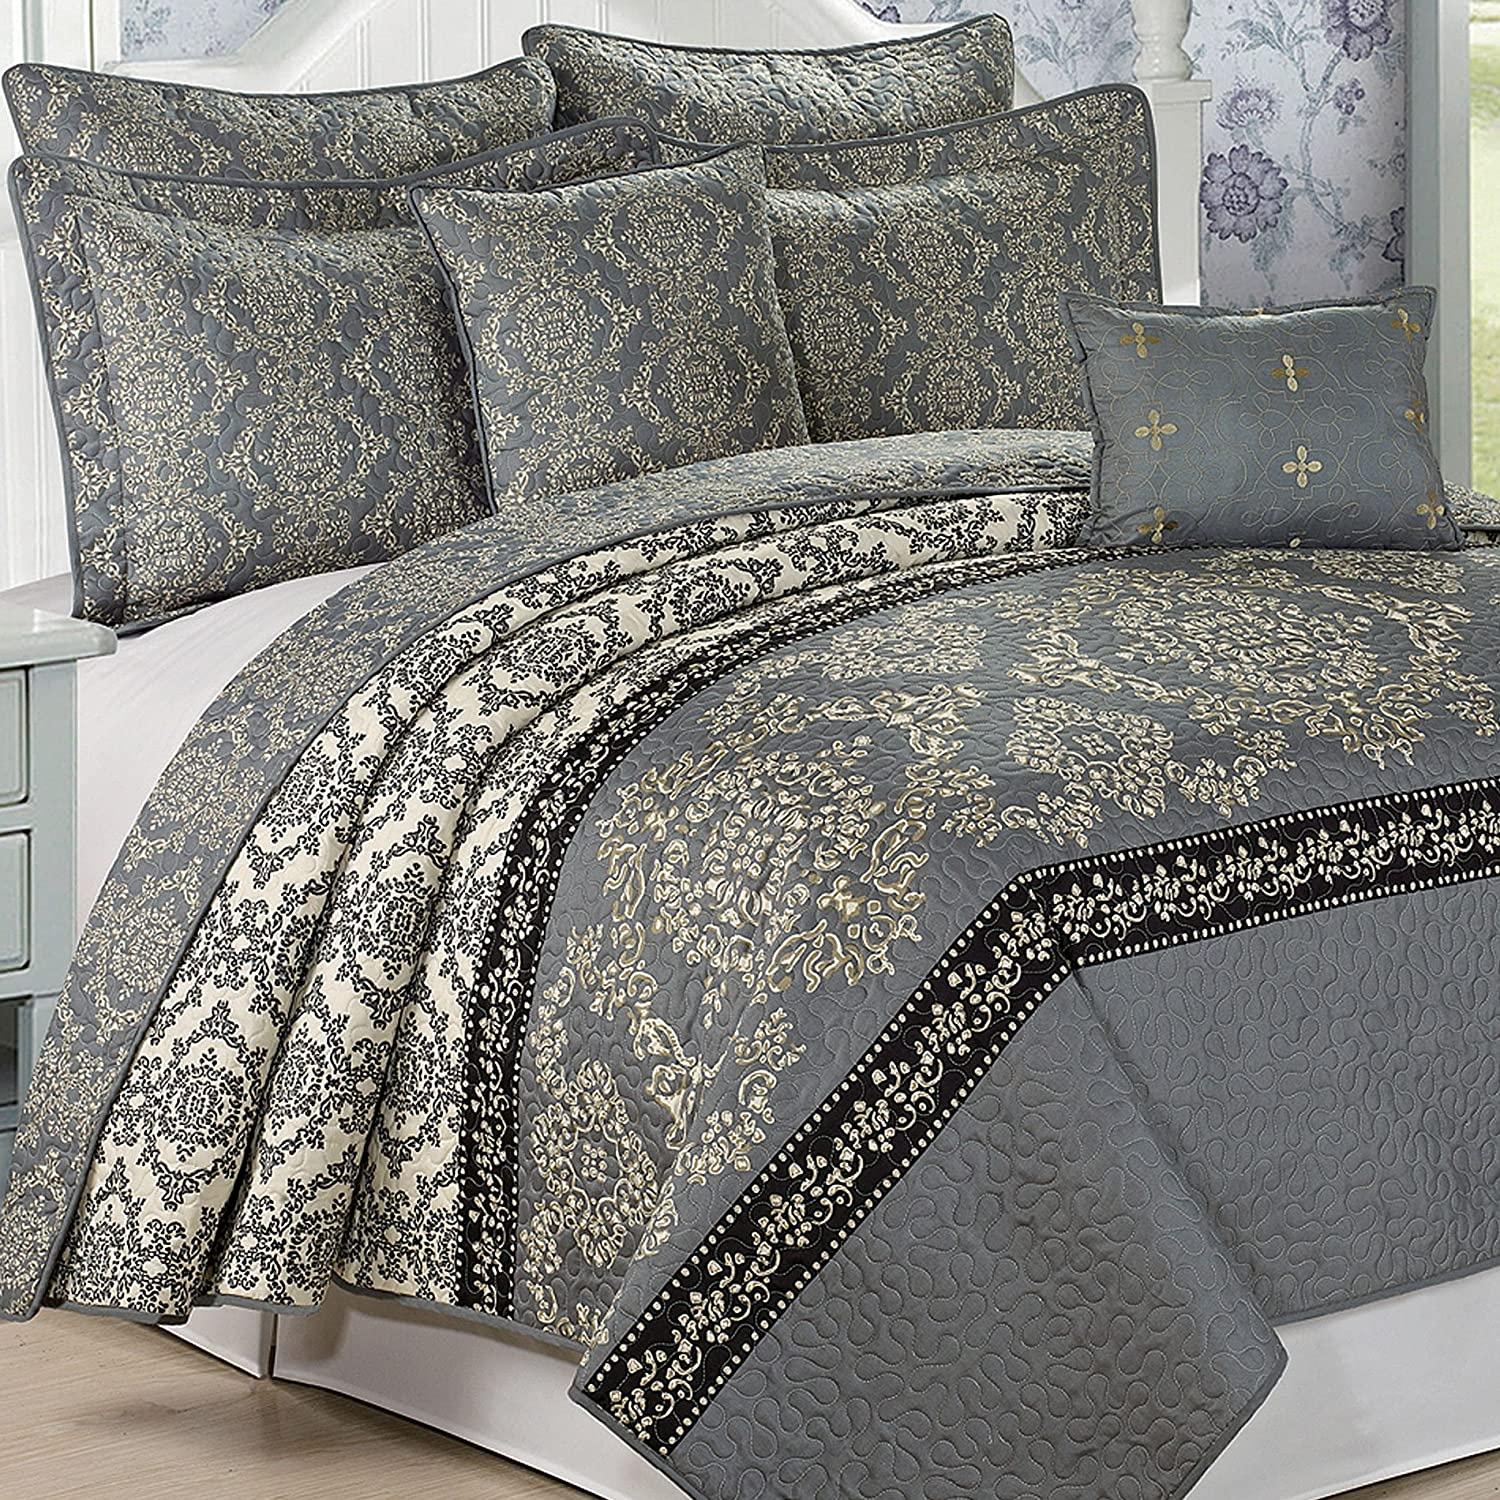 Charcoal King Serenta Printed Microfiber 7 Piece Mystic Bedspread Quilts Set